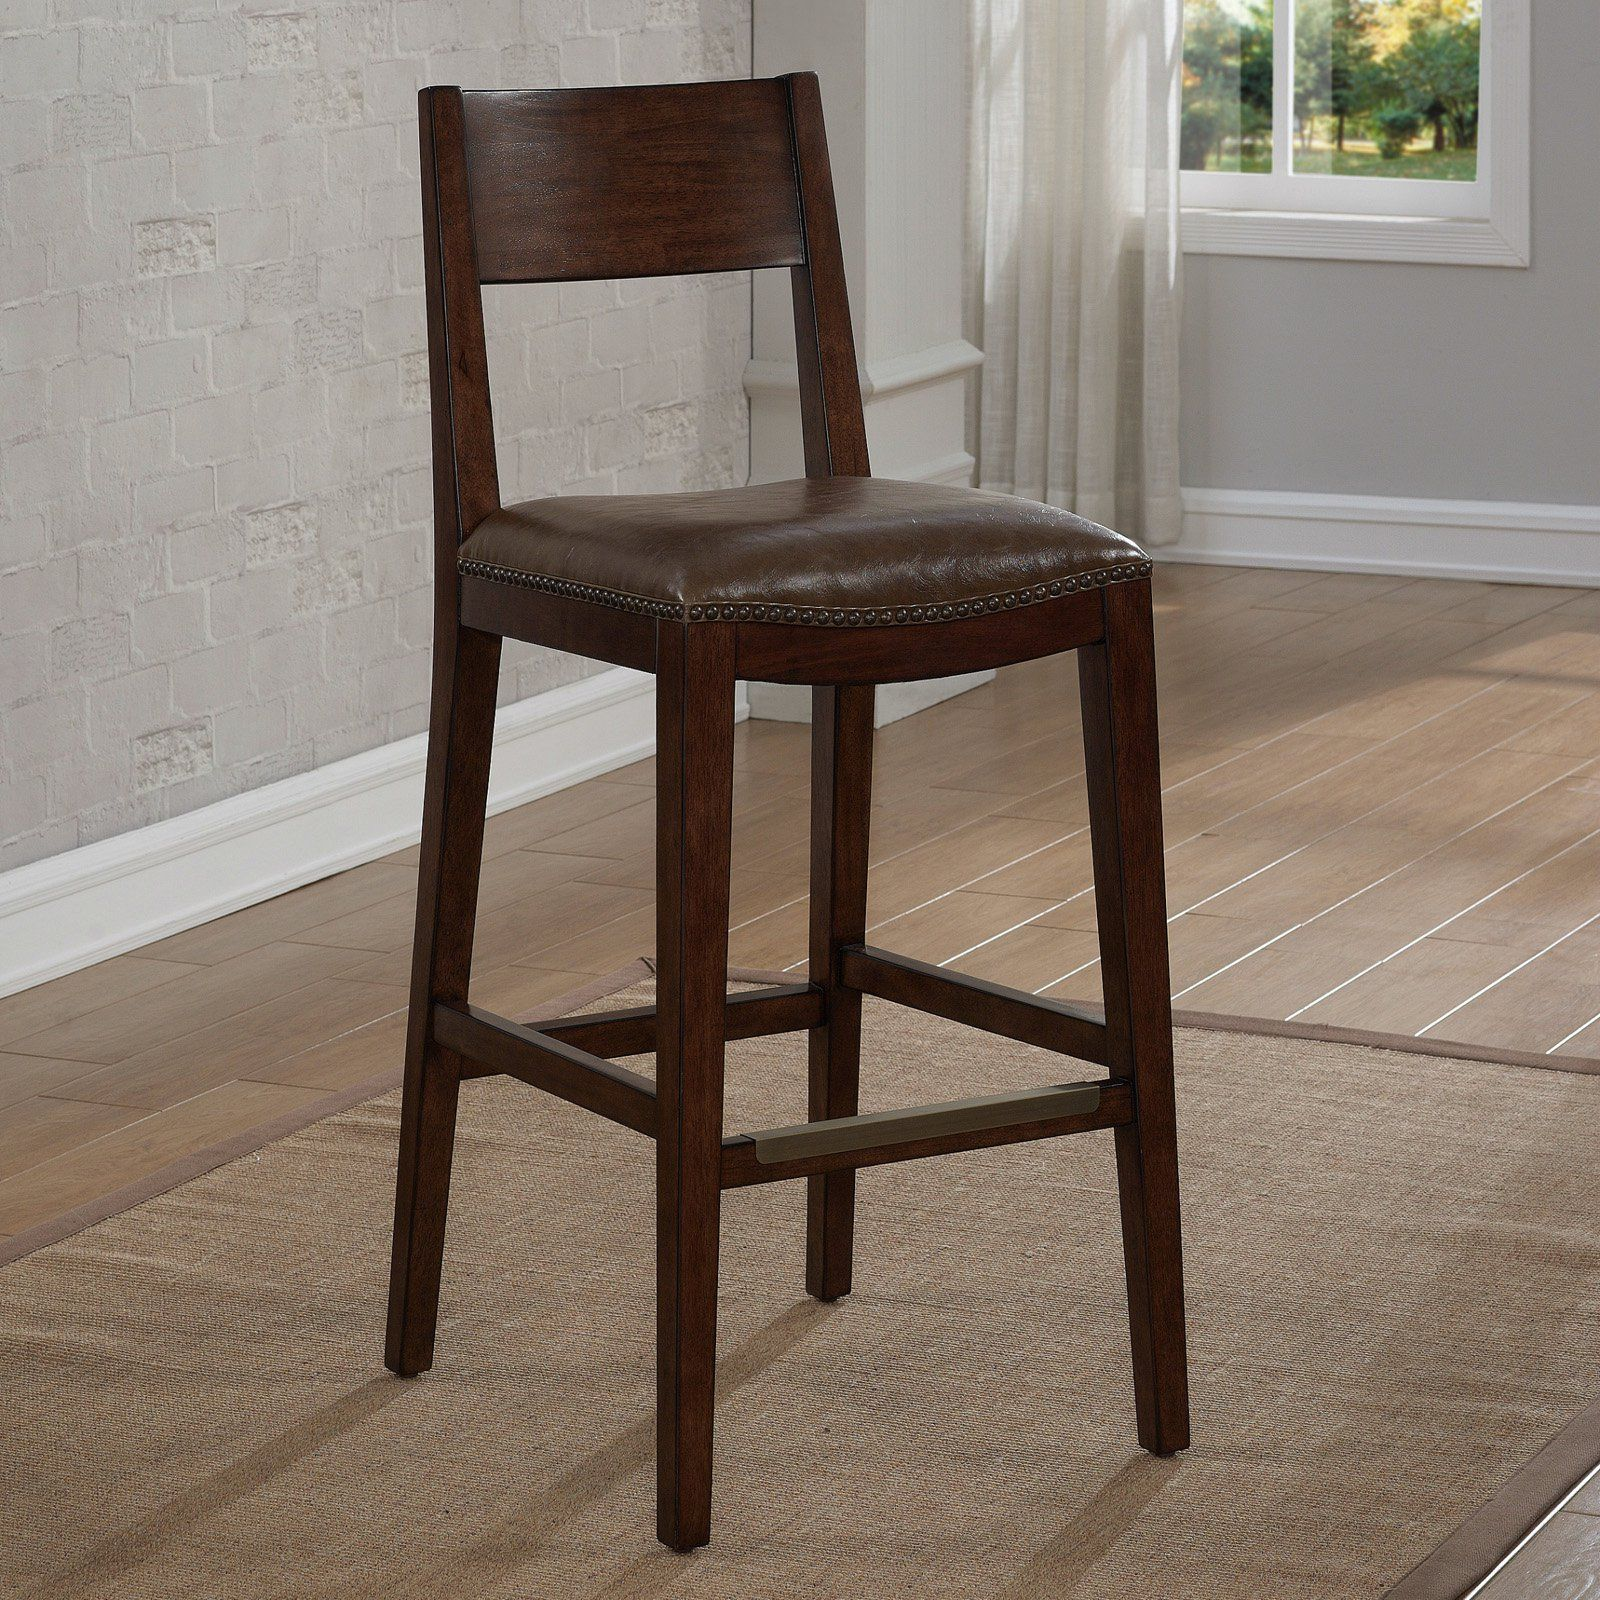 American Heritage Ralston Bar Height Stool | from hayneedle.com